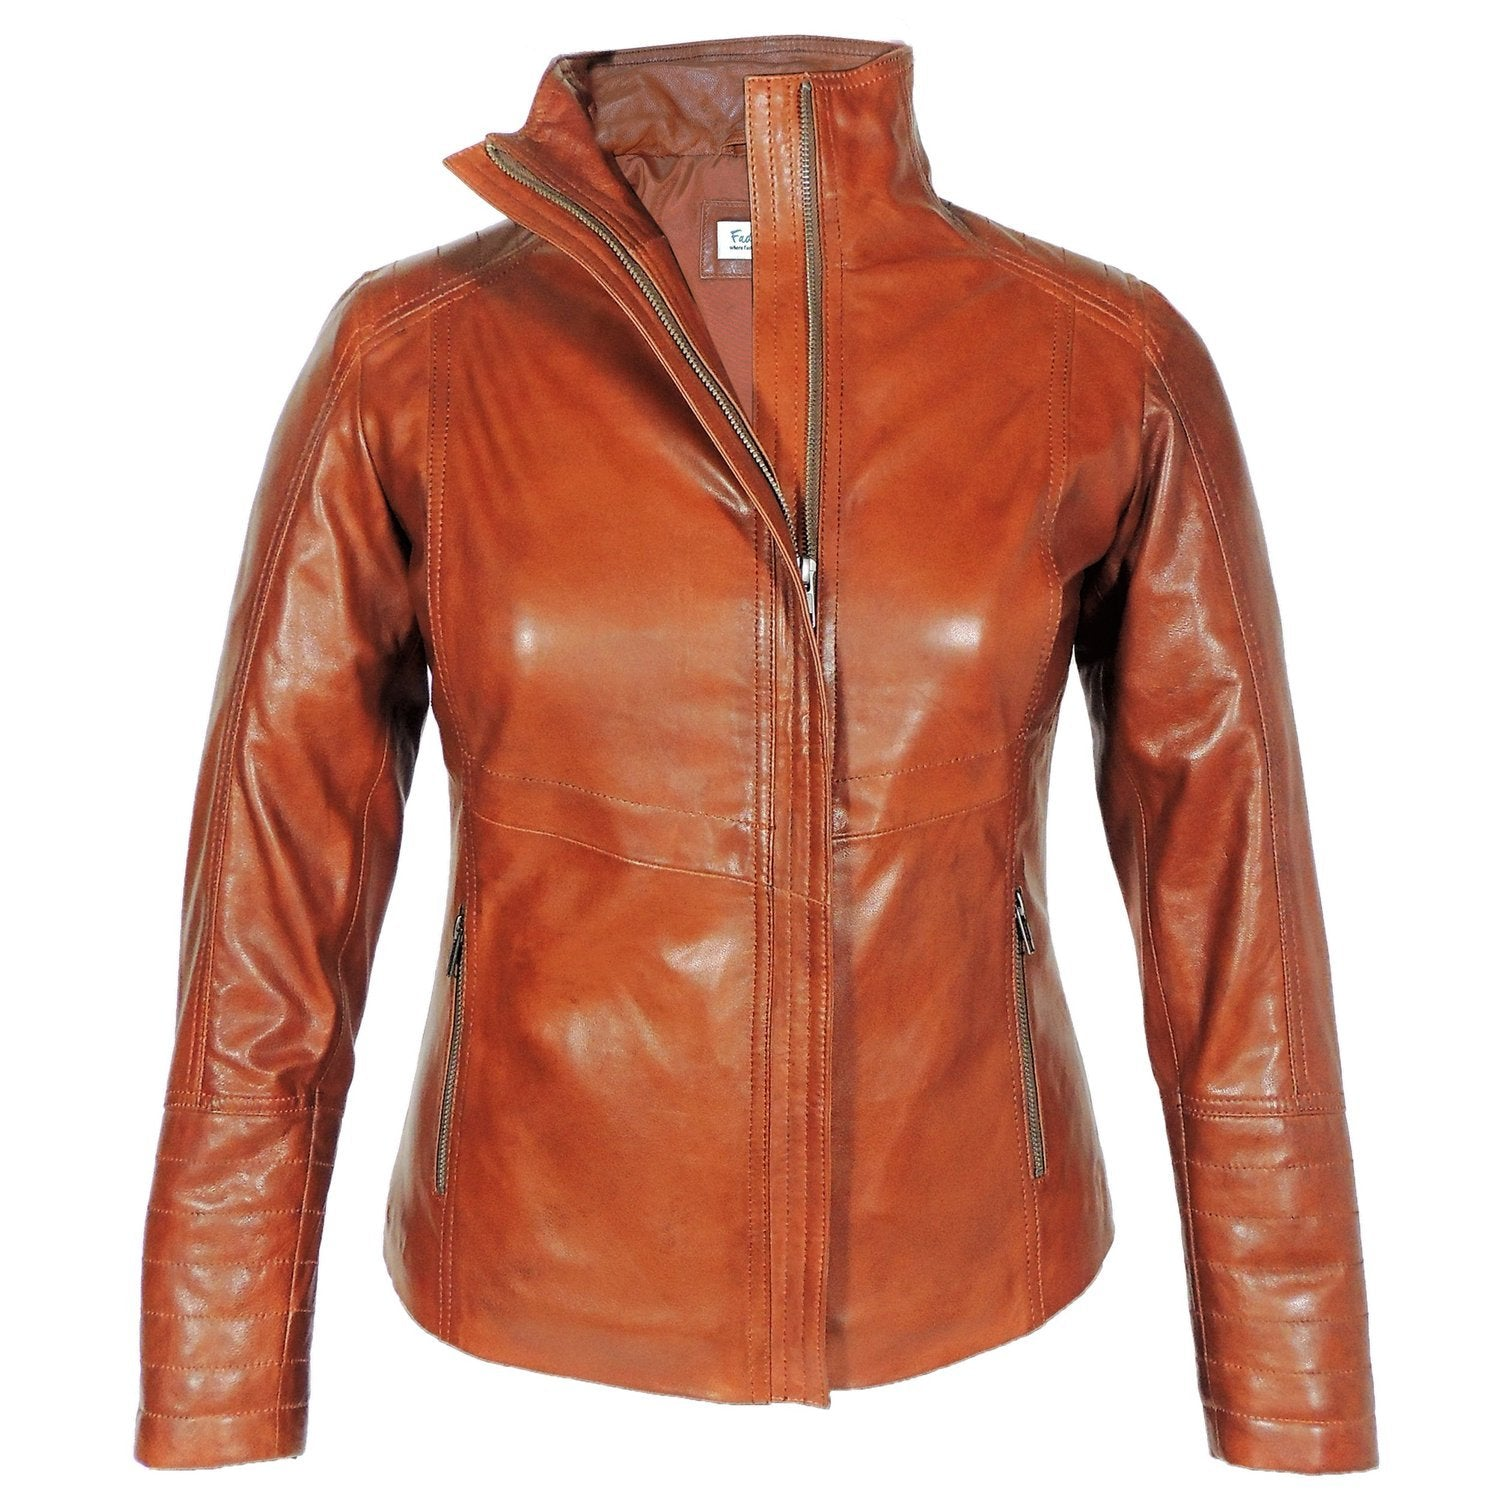 Arra Womens Leather Jacket, Brown - Fadcloset